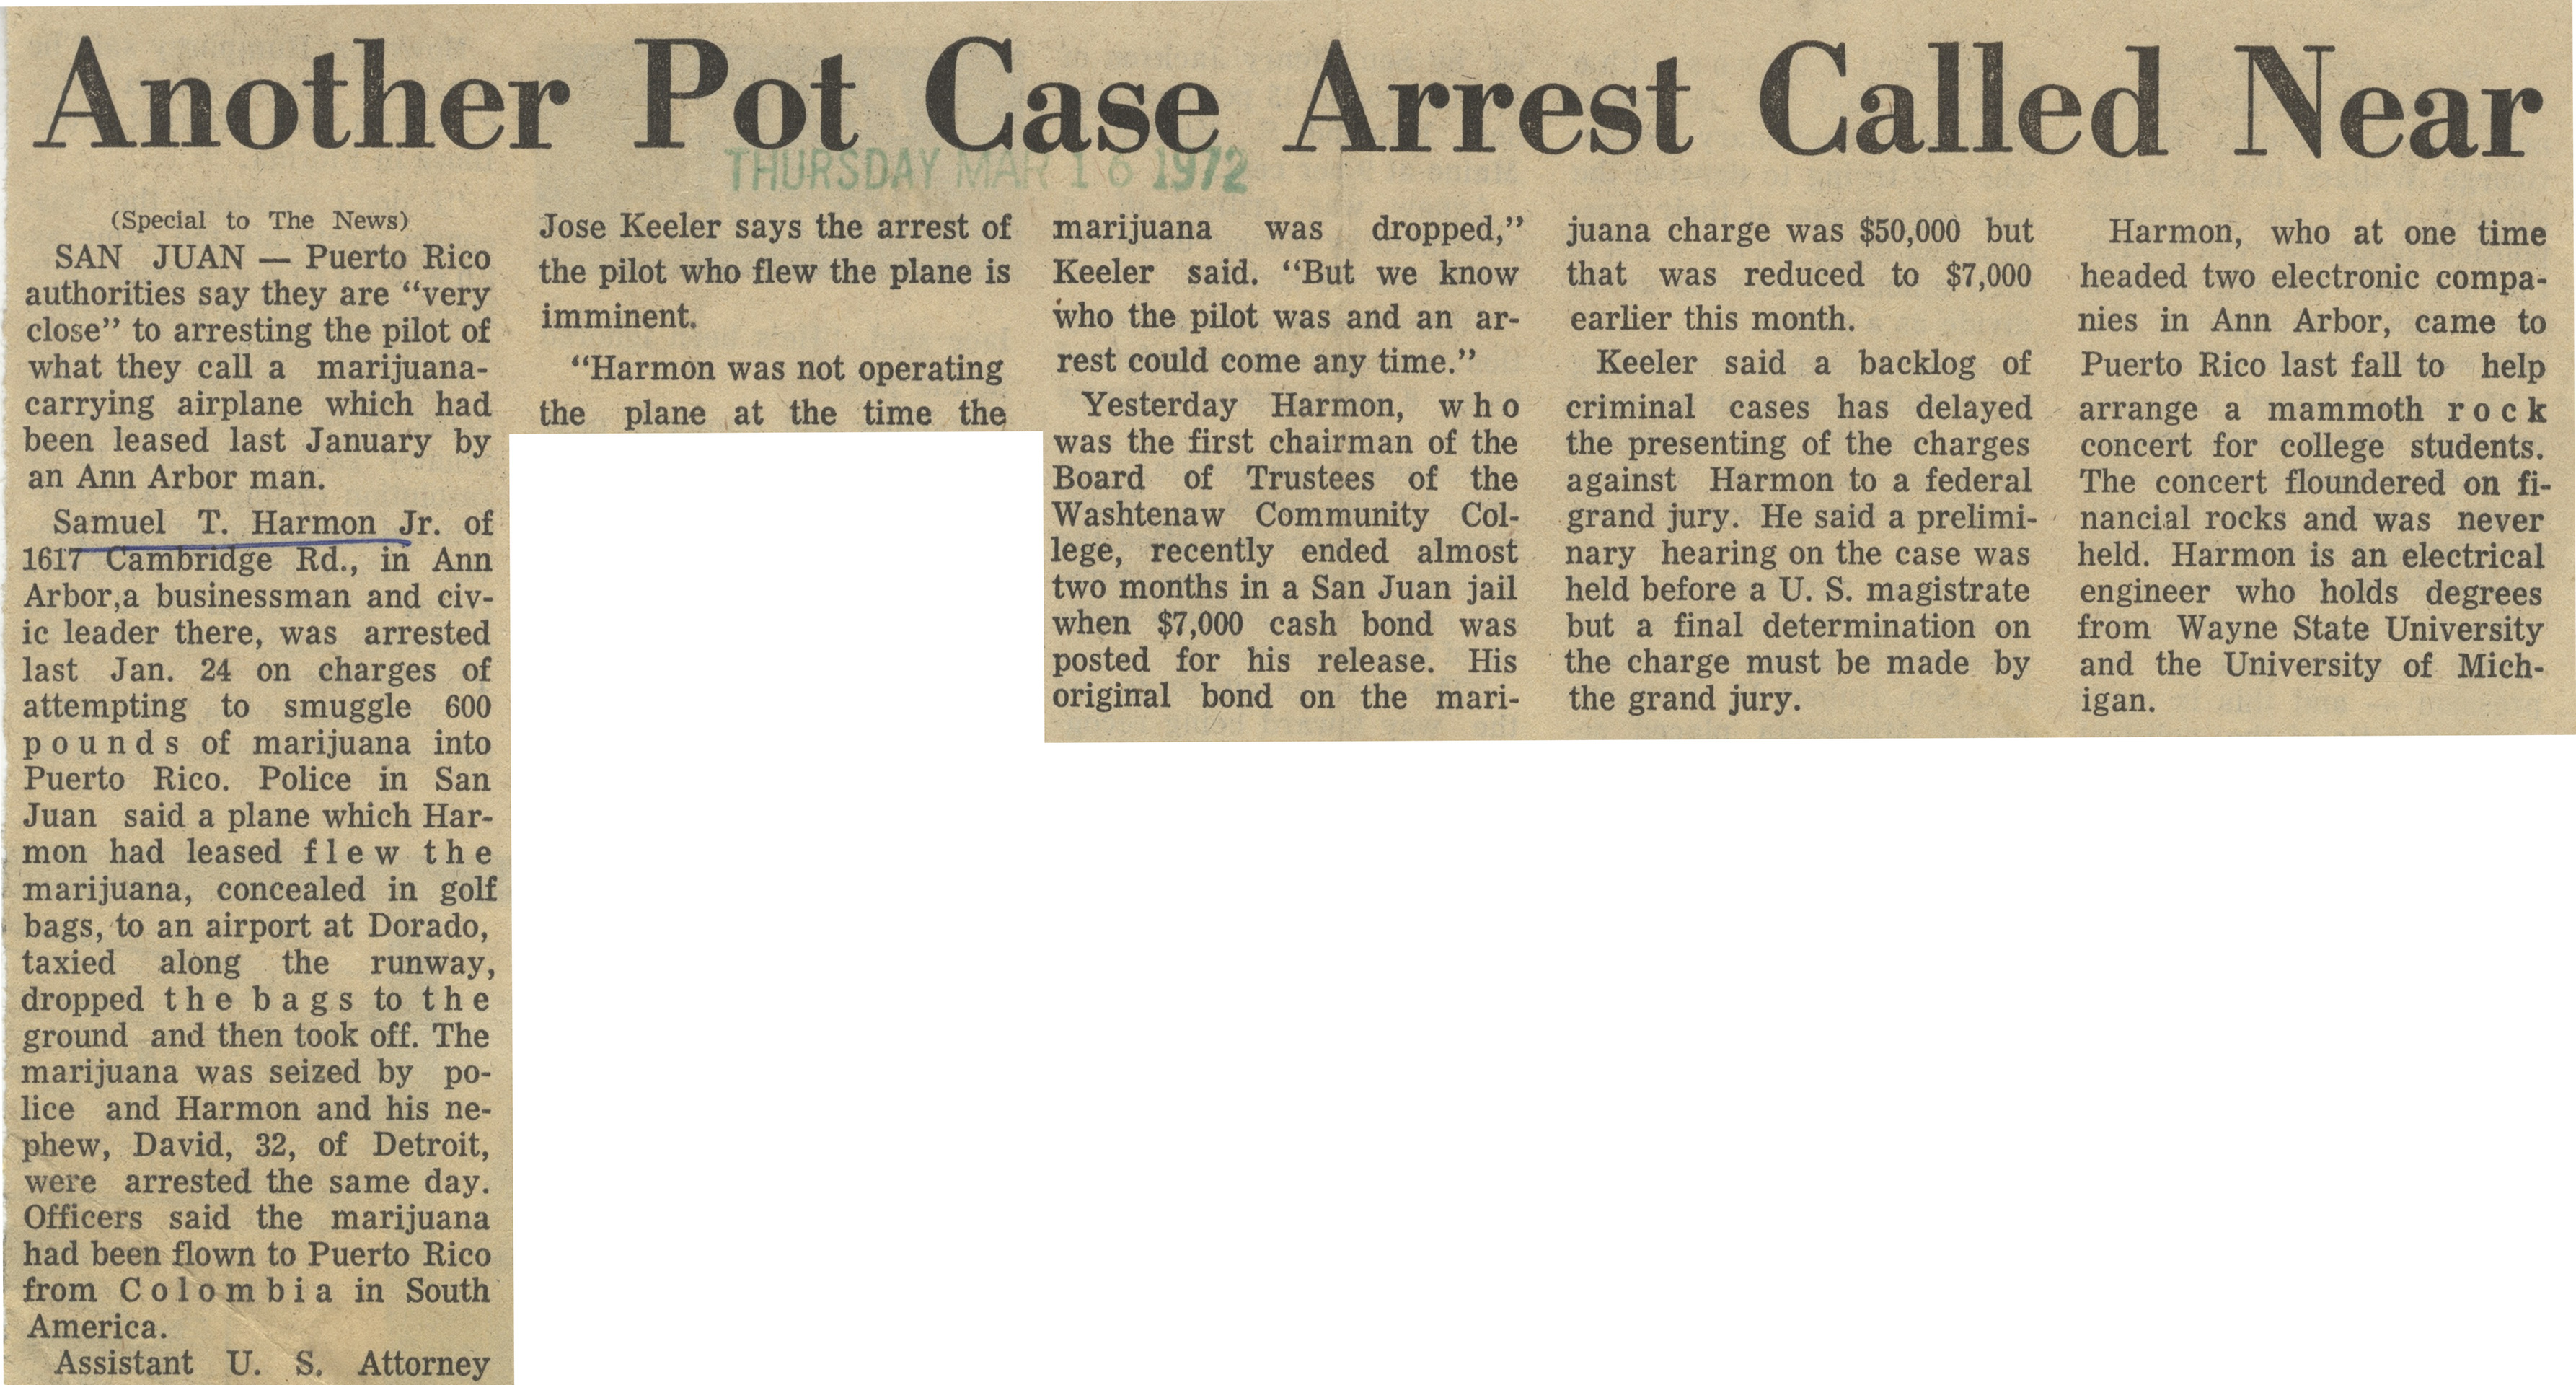 Another Pot Case Arrest Called Near image